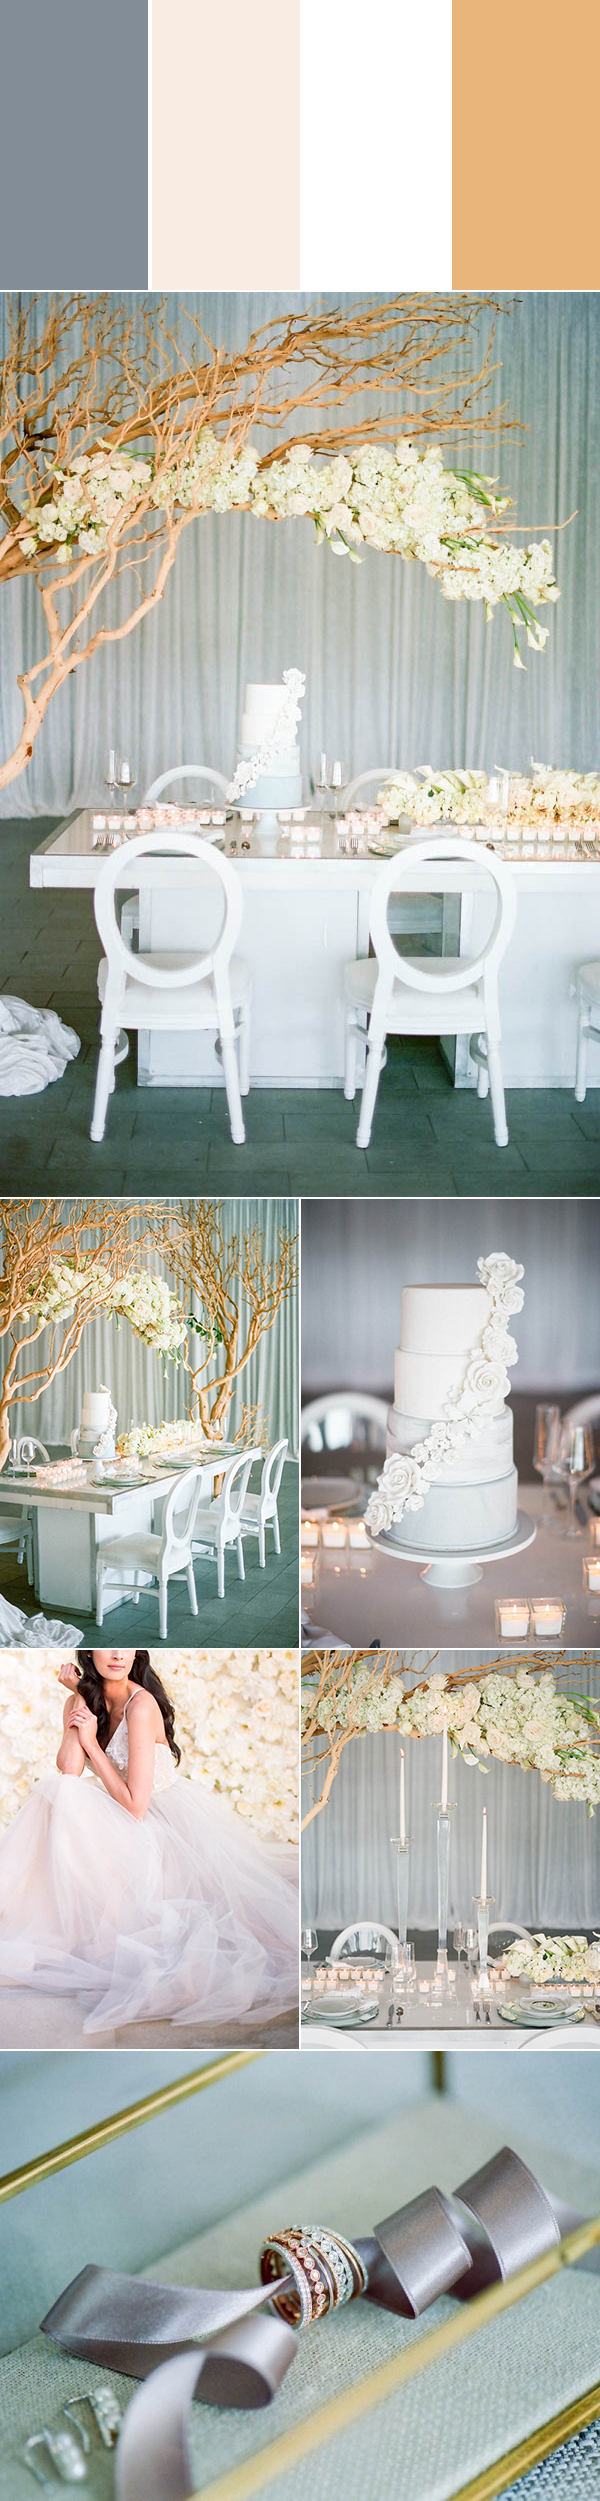 5 Strikingly Beautiful Neutral Wedding Color Palettes | Junebug Weddings